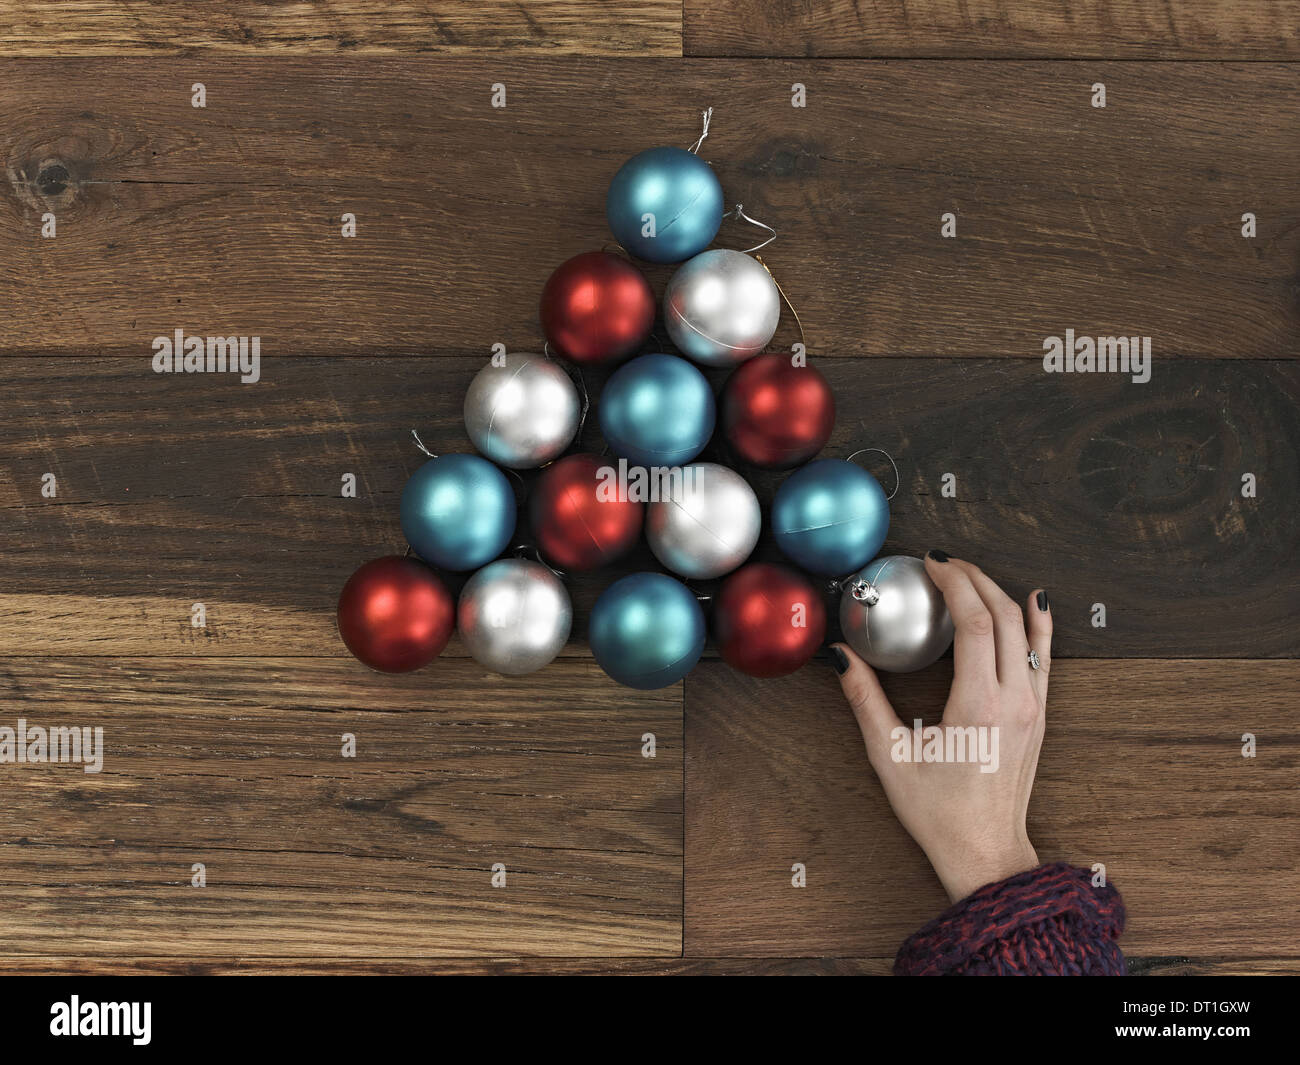 A collection of blue red and silver ornaments A Christmas tree shape A person's hand placing the final ball - Stock Image